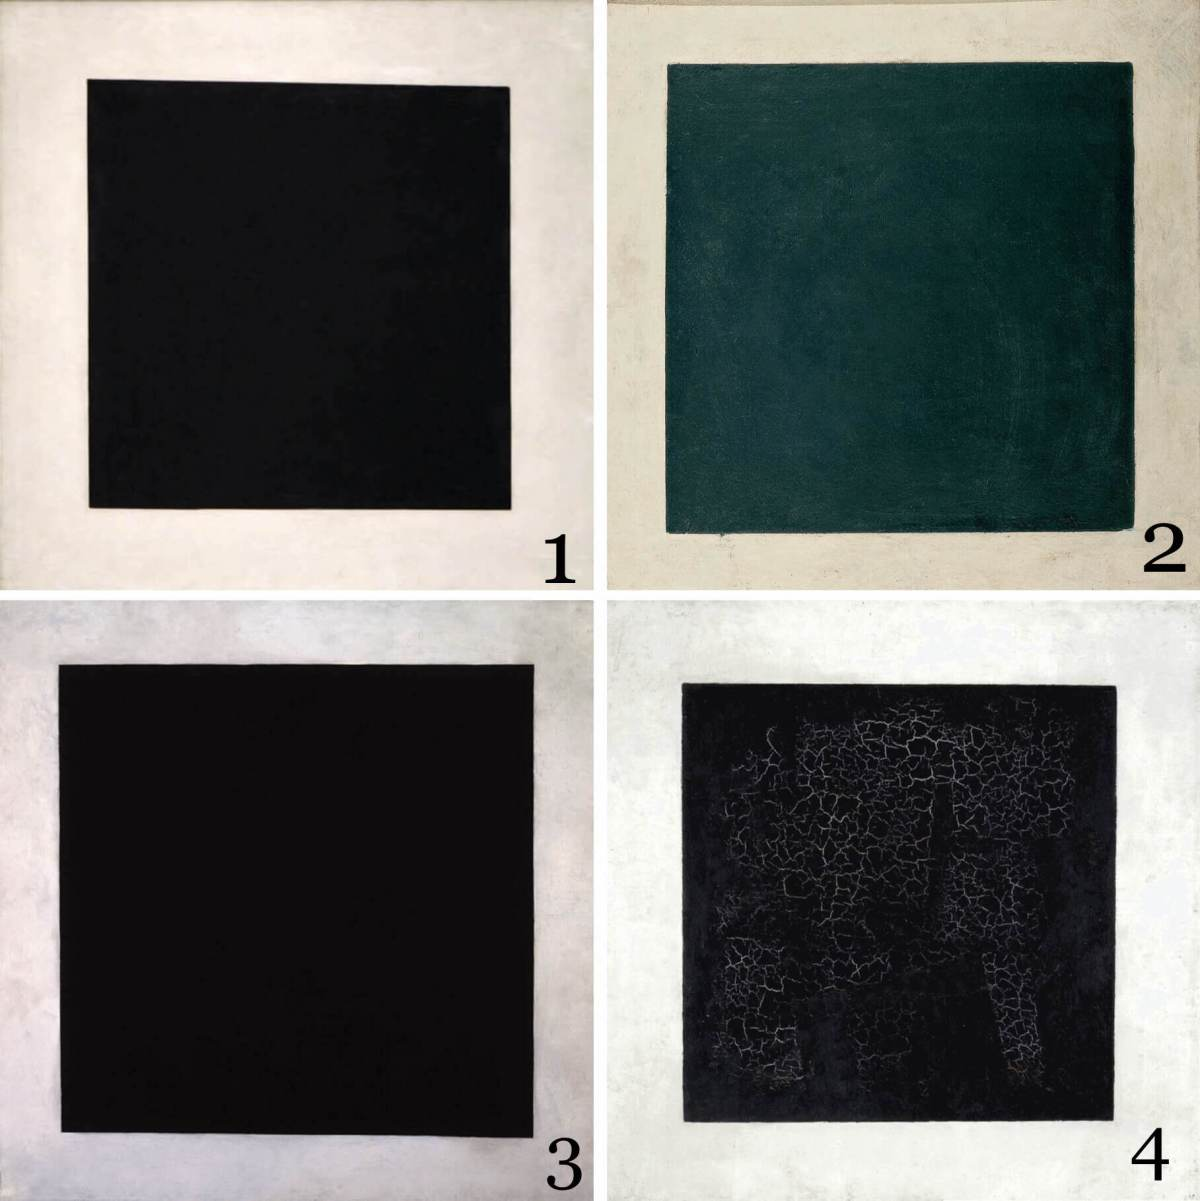 Malevich's art-works